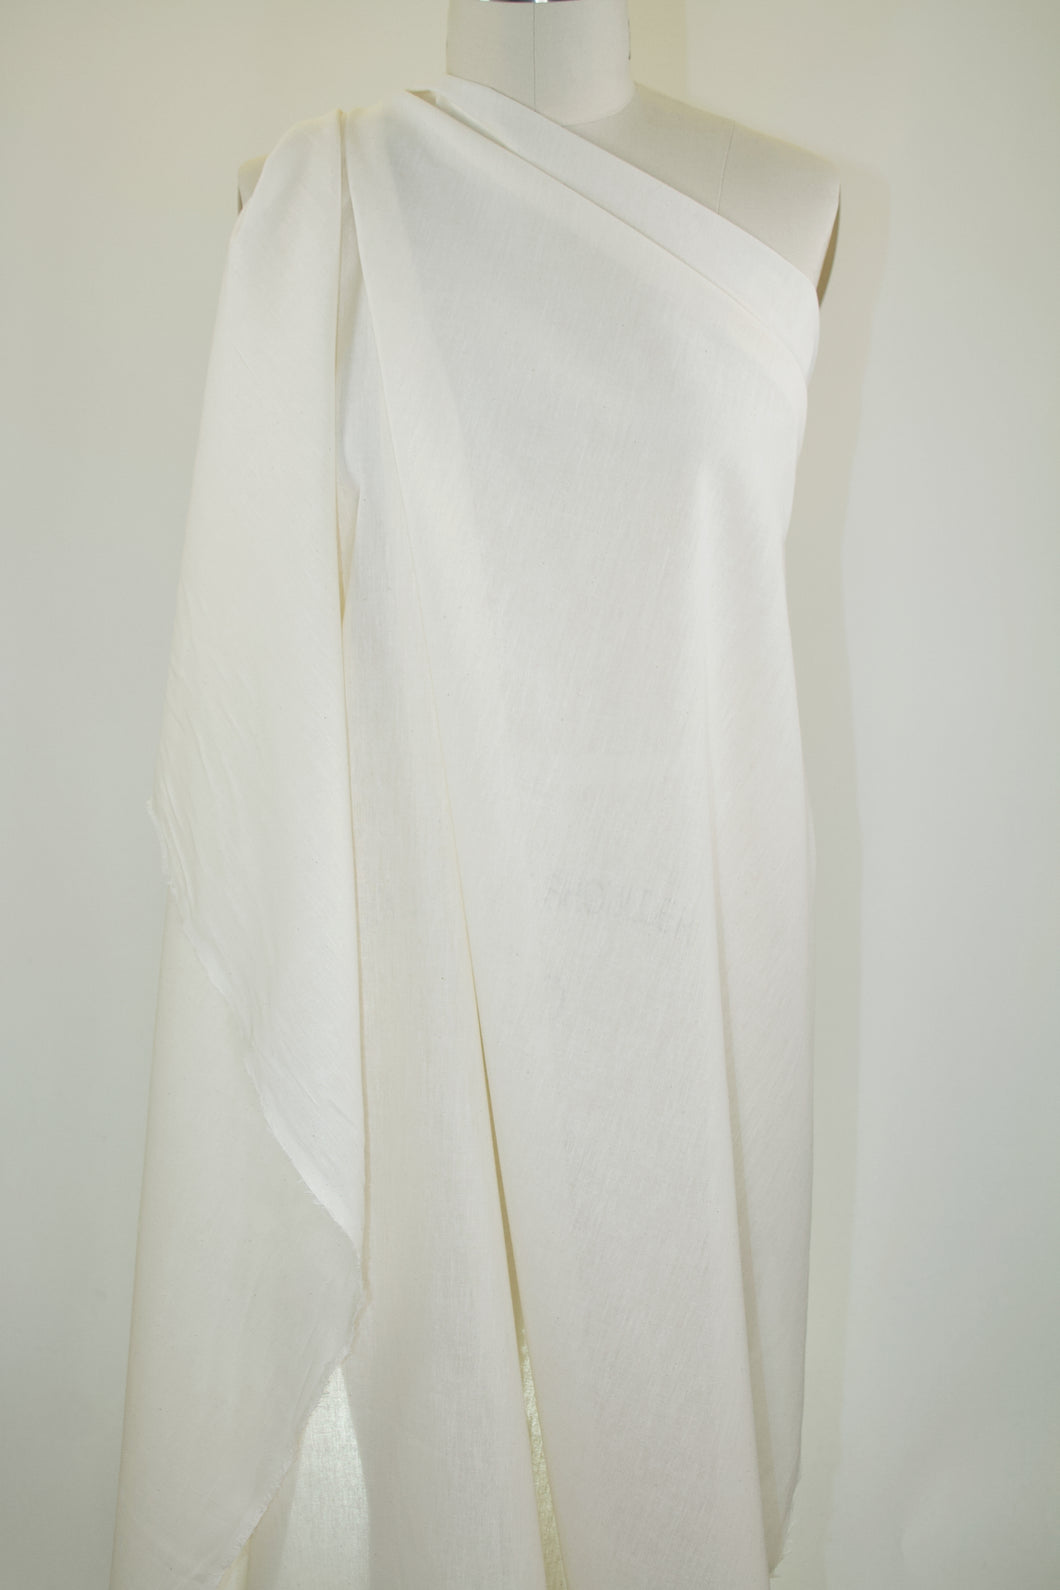 Soft, Blouse-Weight 48 Inch Wide Unbleached Muslin